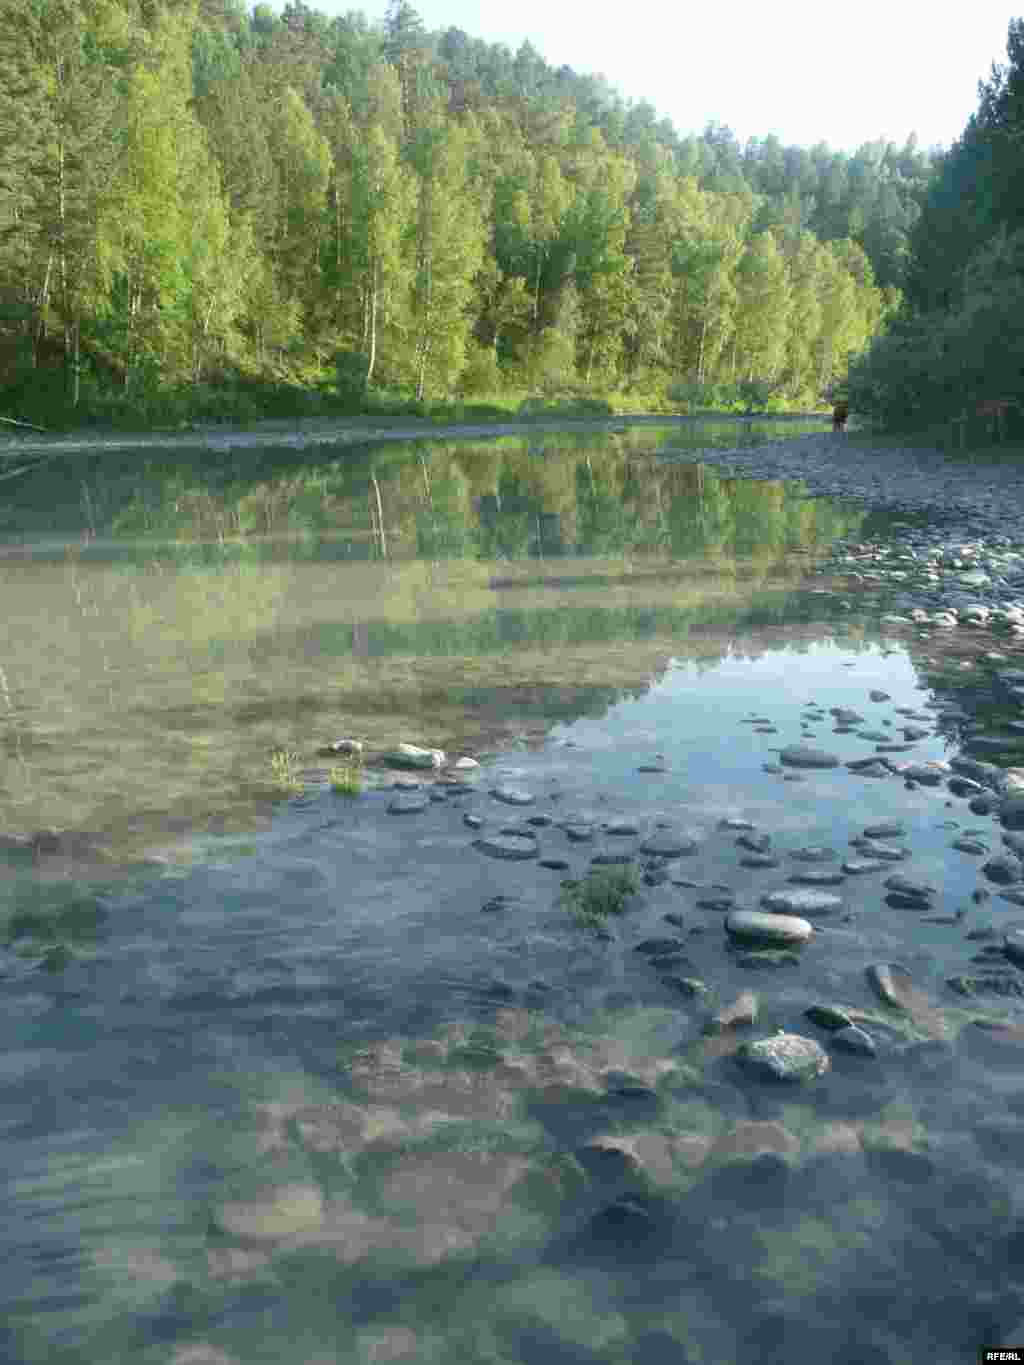 Russia – Altay region, river, landscape, boat, rafting, forest, 10Jun2008